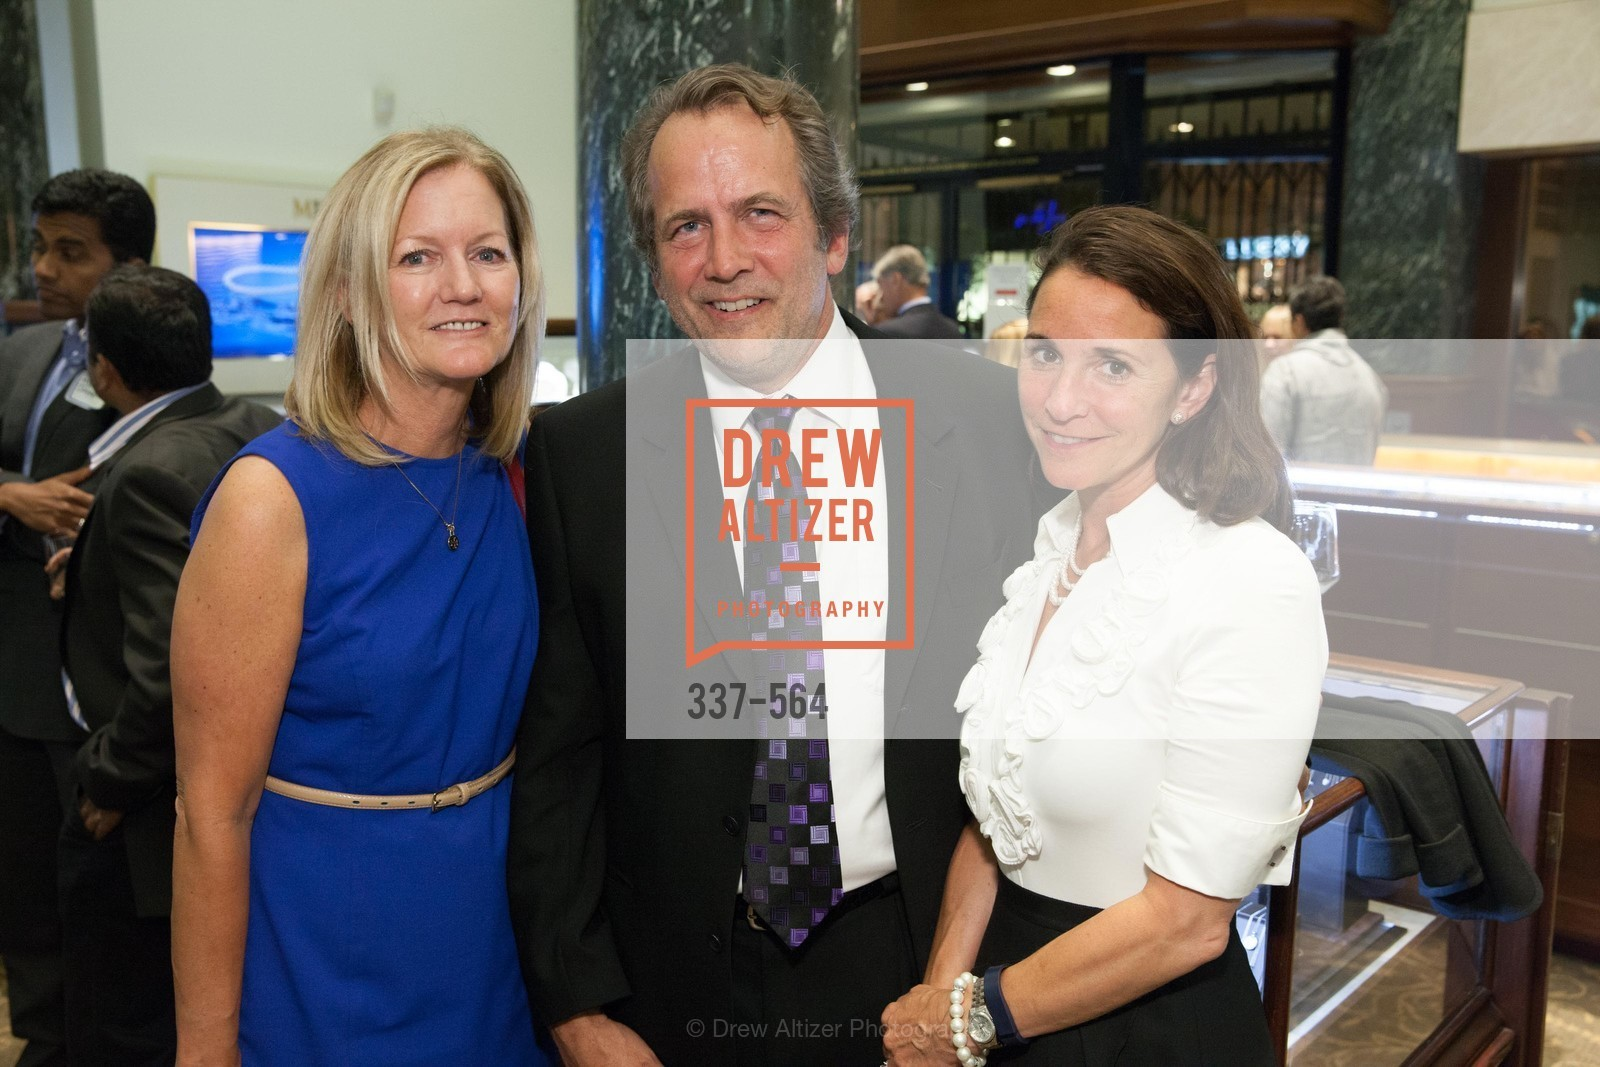 Erin McGlynn, Mark Hanson, Michele Hanson, SHREVE & CO. Hosts AMERICAN CANCER SOCIETY BENEFIT, US, September 10th, 2014,Drew Altizer, Drew Altizer Photography, full-service agency, private events, San Francisco photographer, photographer california